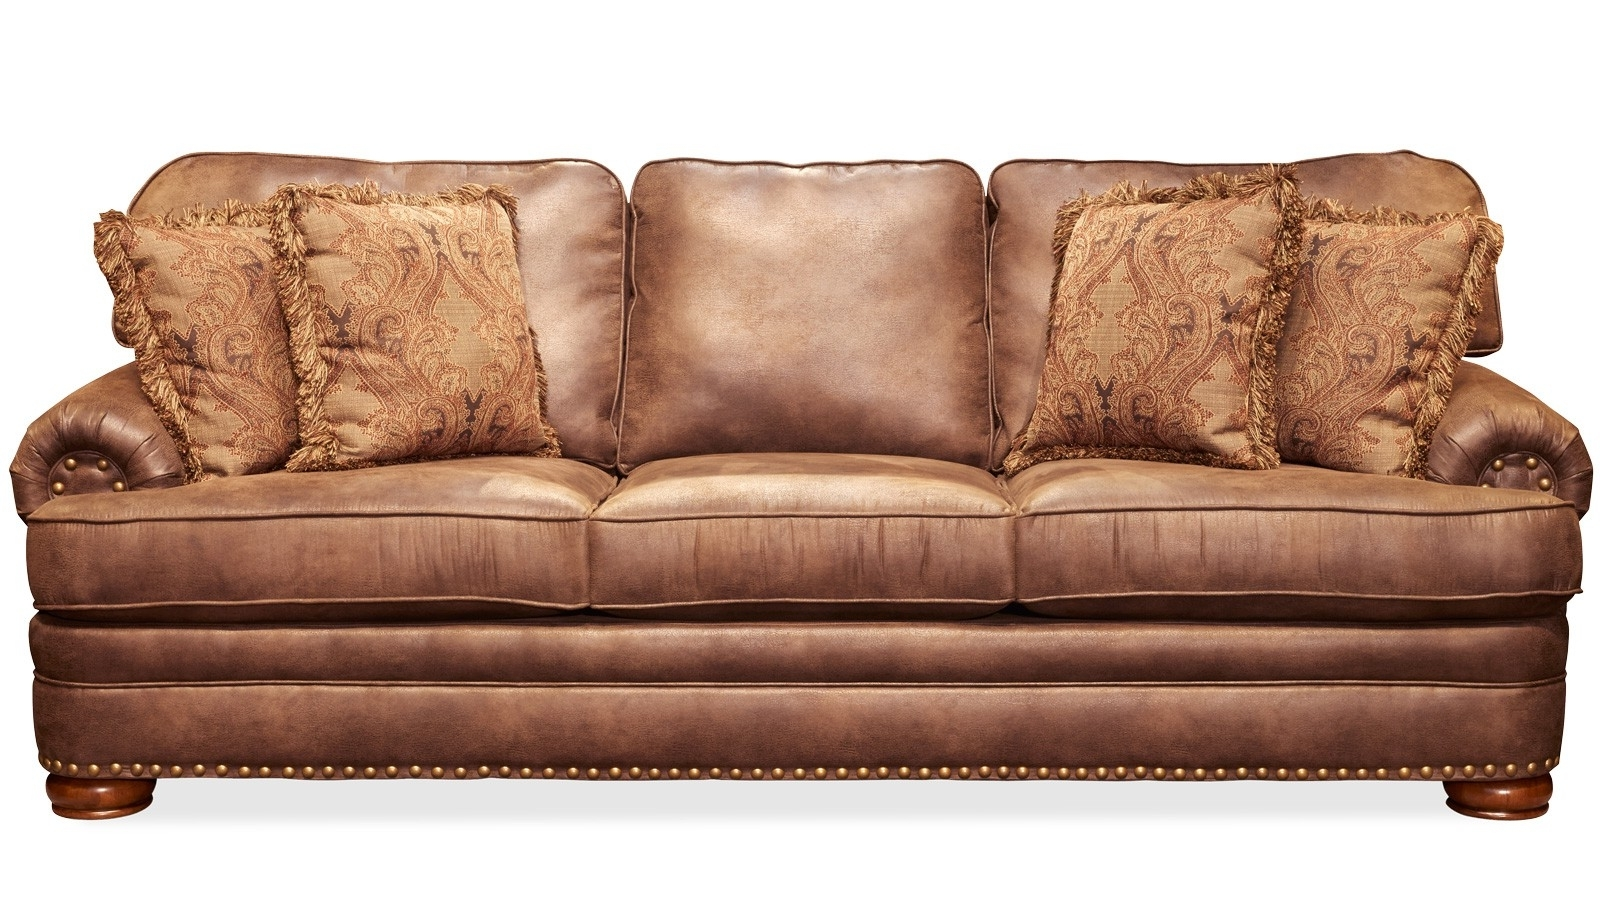 Gallery Furniture For El Paso Sectional Sofas (View 8 of 15)